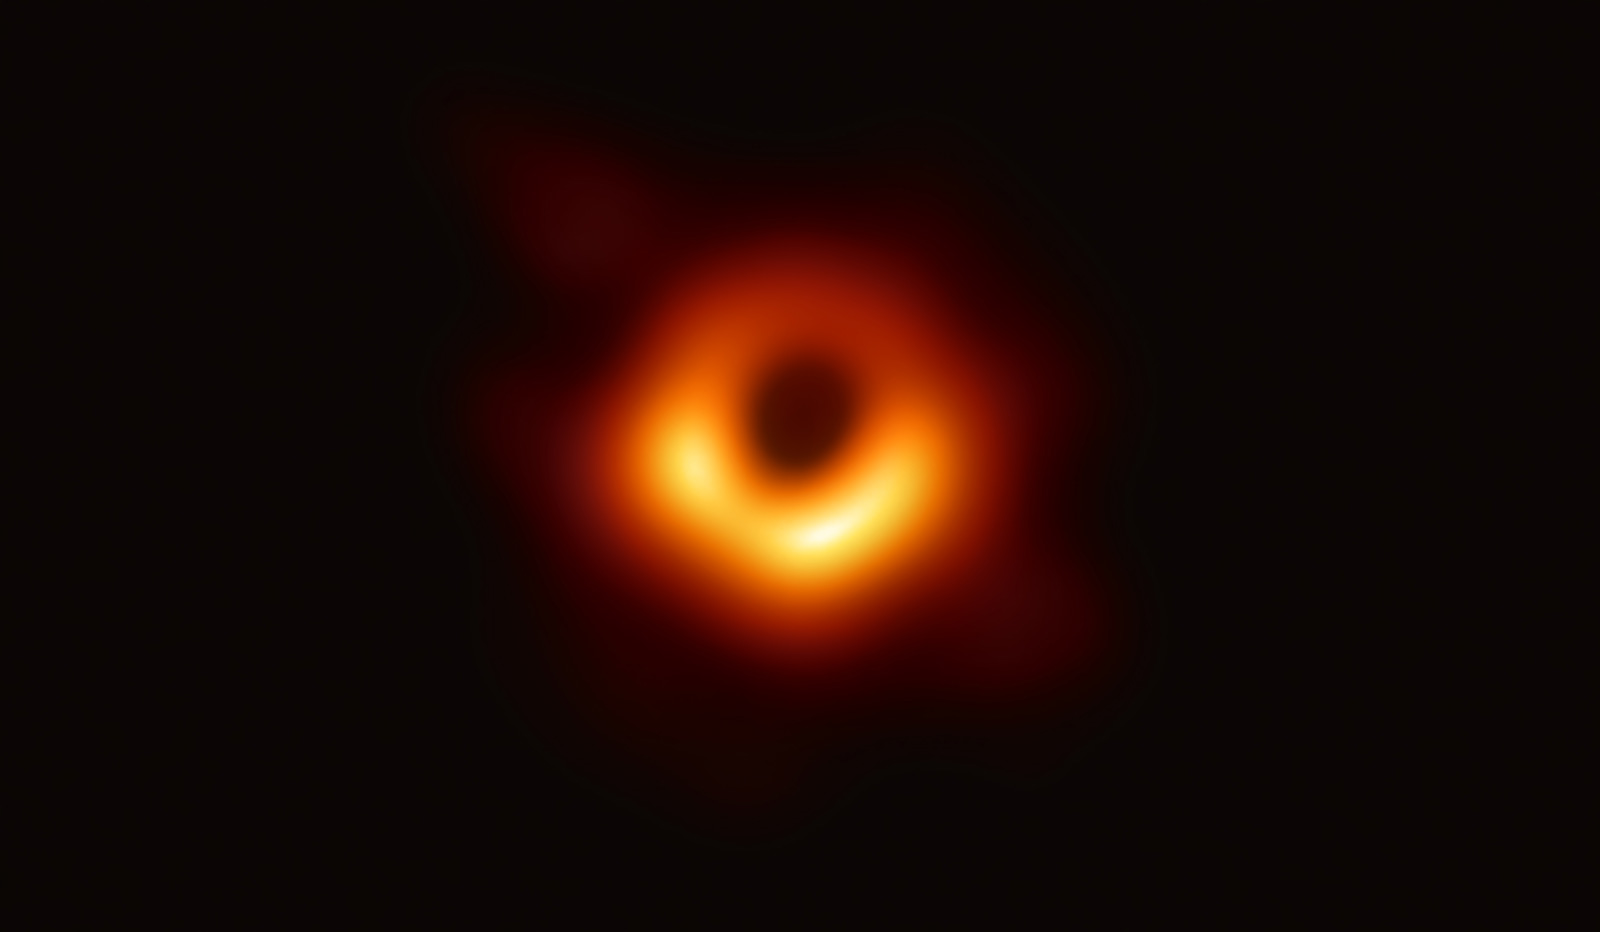 Dark spot of a black hole ringed with bright orange light.